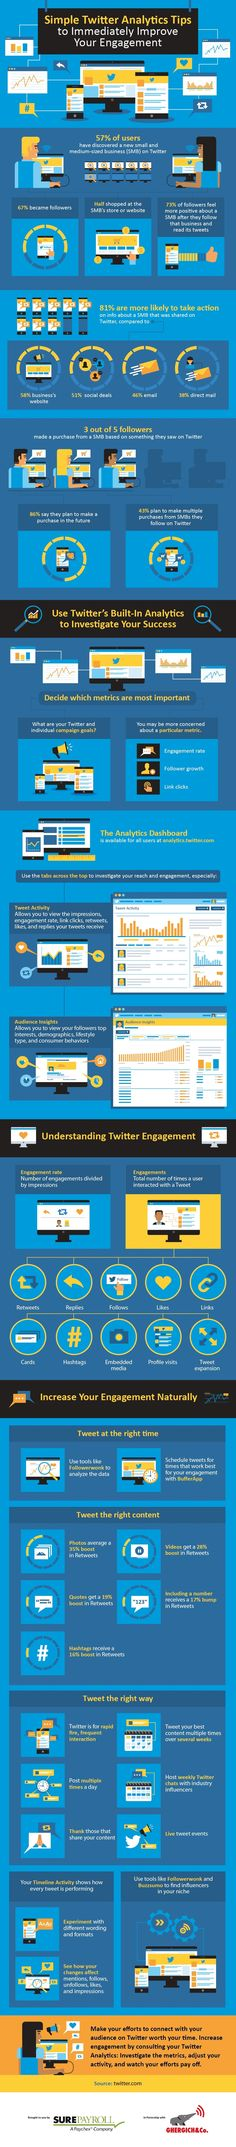 Simple Twitter Analytics Tips to Immediately Improve Your Engagement - #Infographic